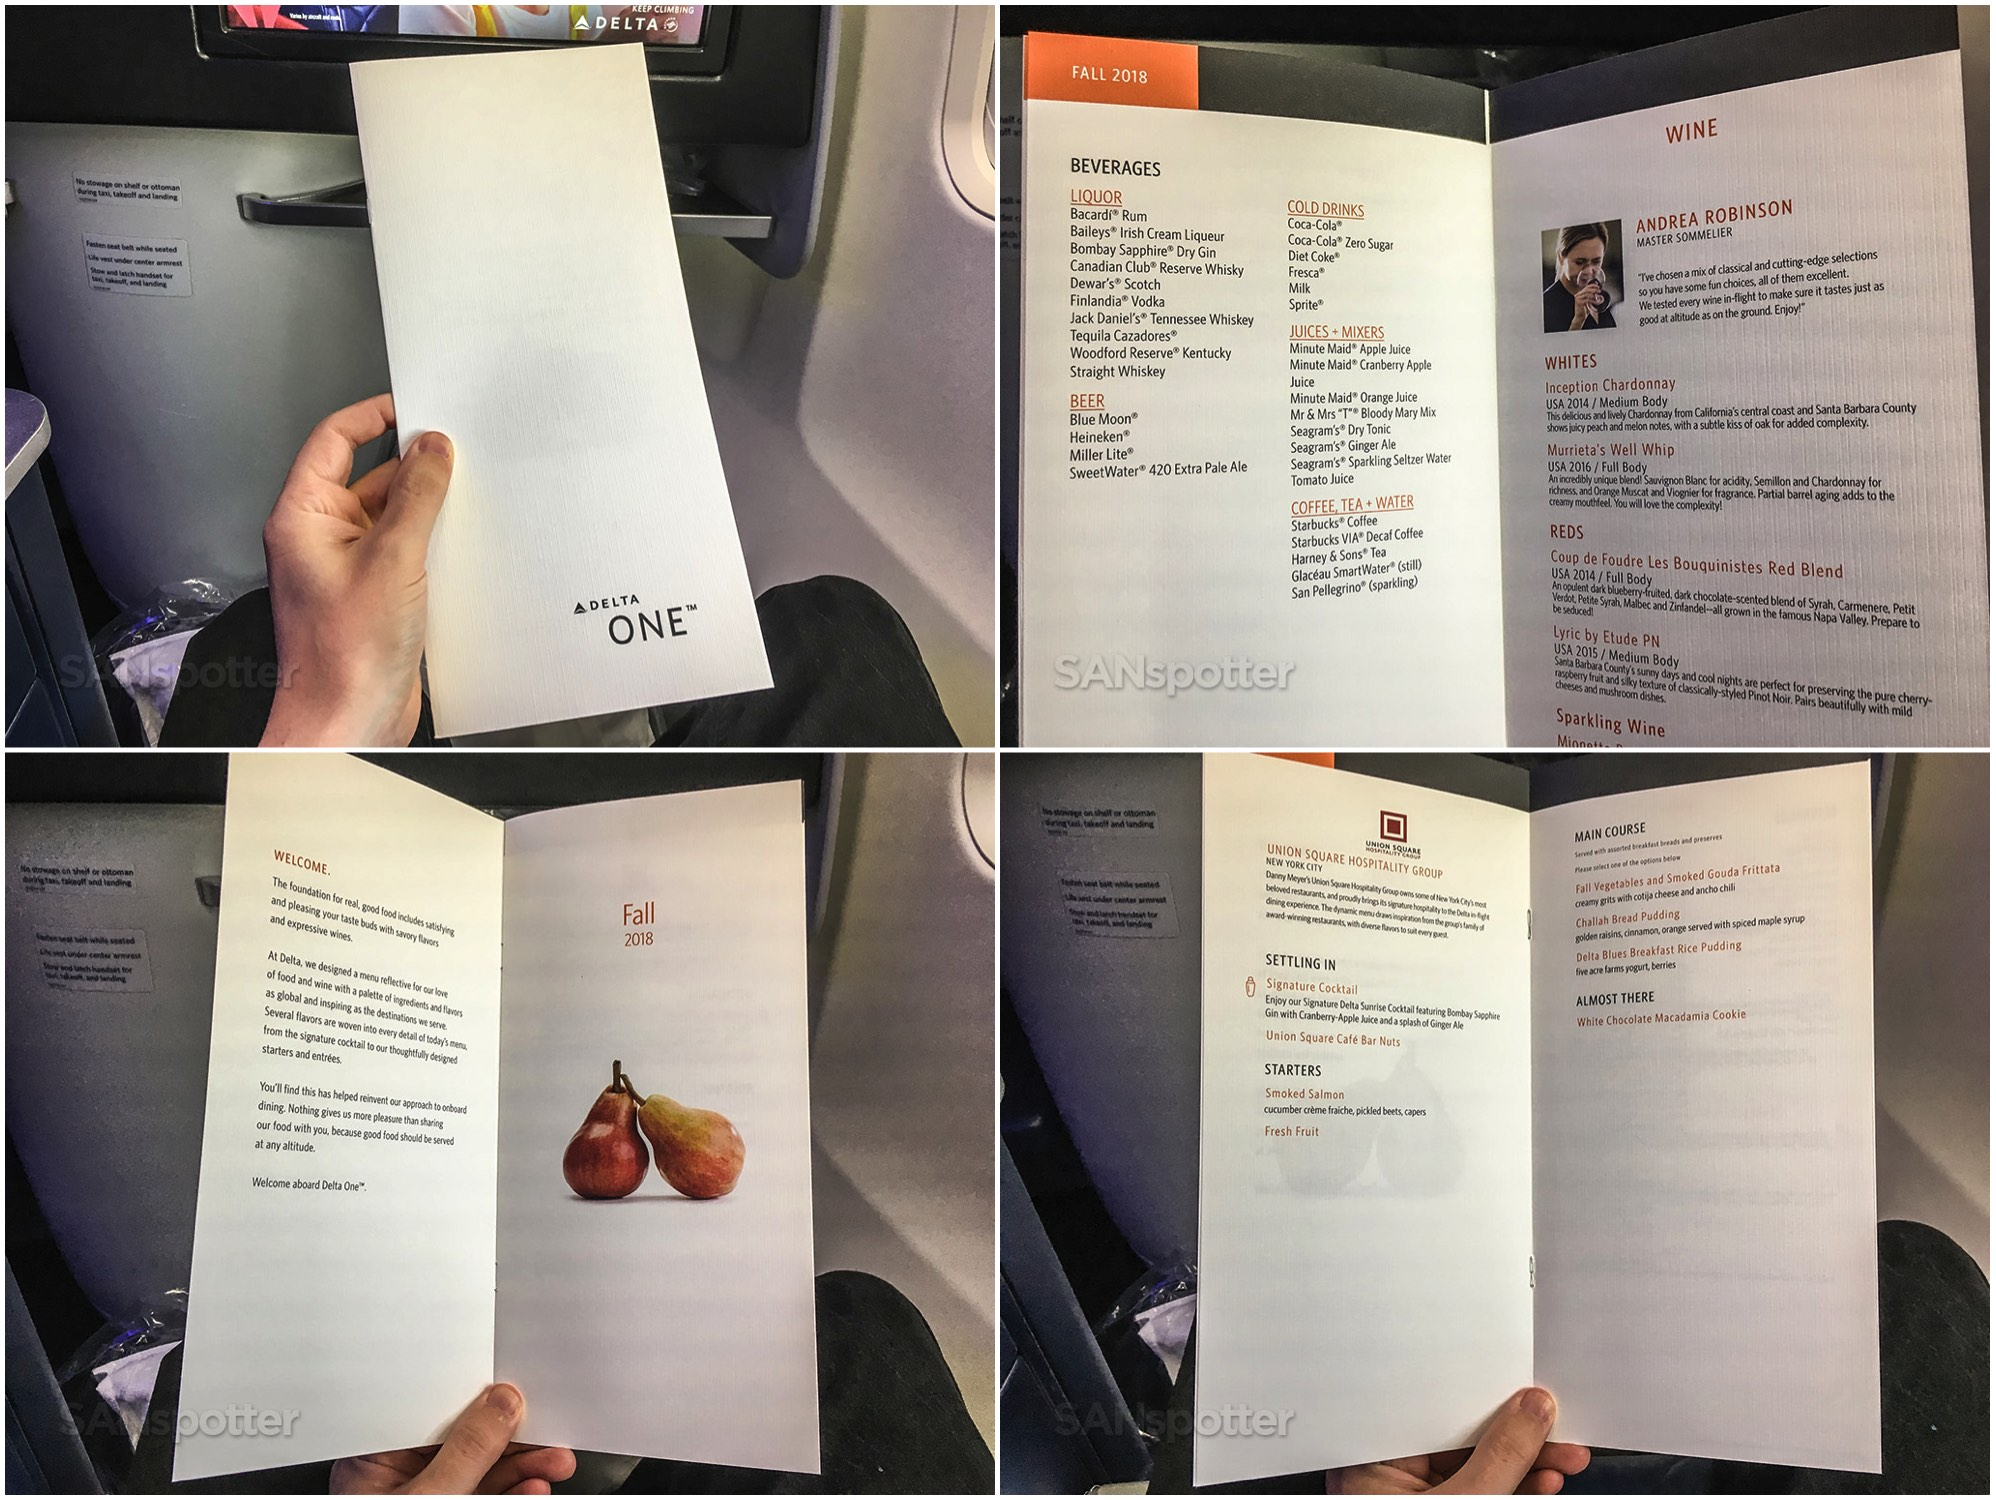 Delta one September 2018 breakfast menu